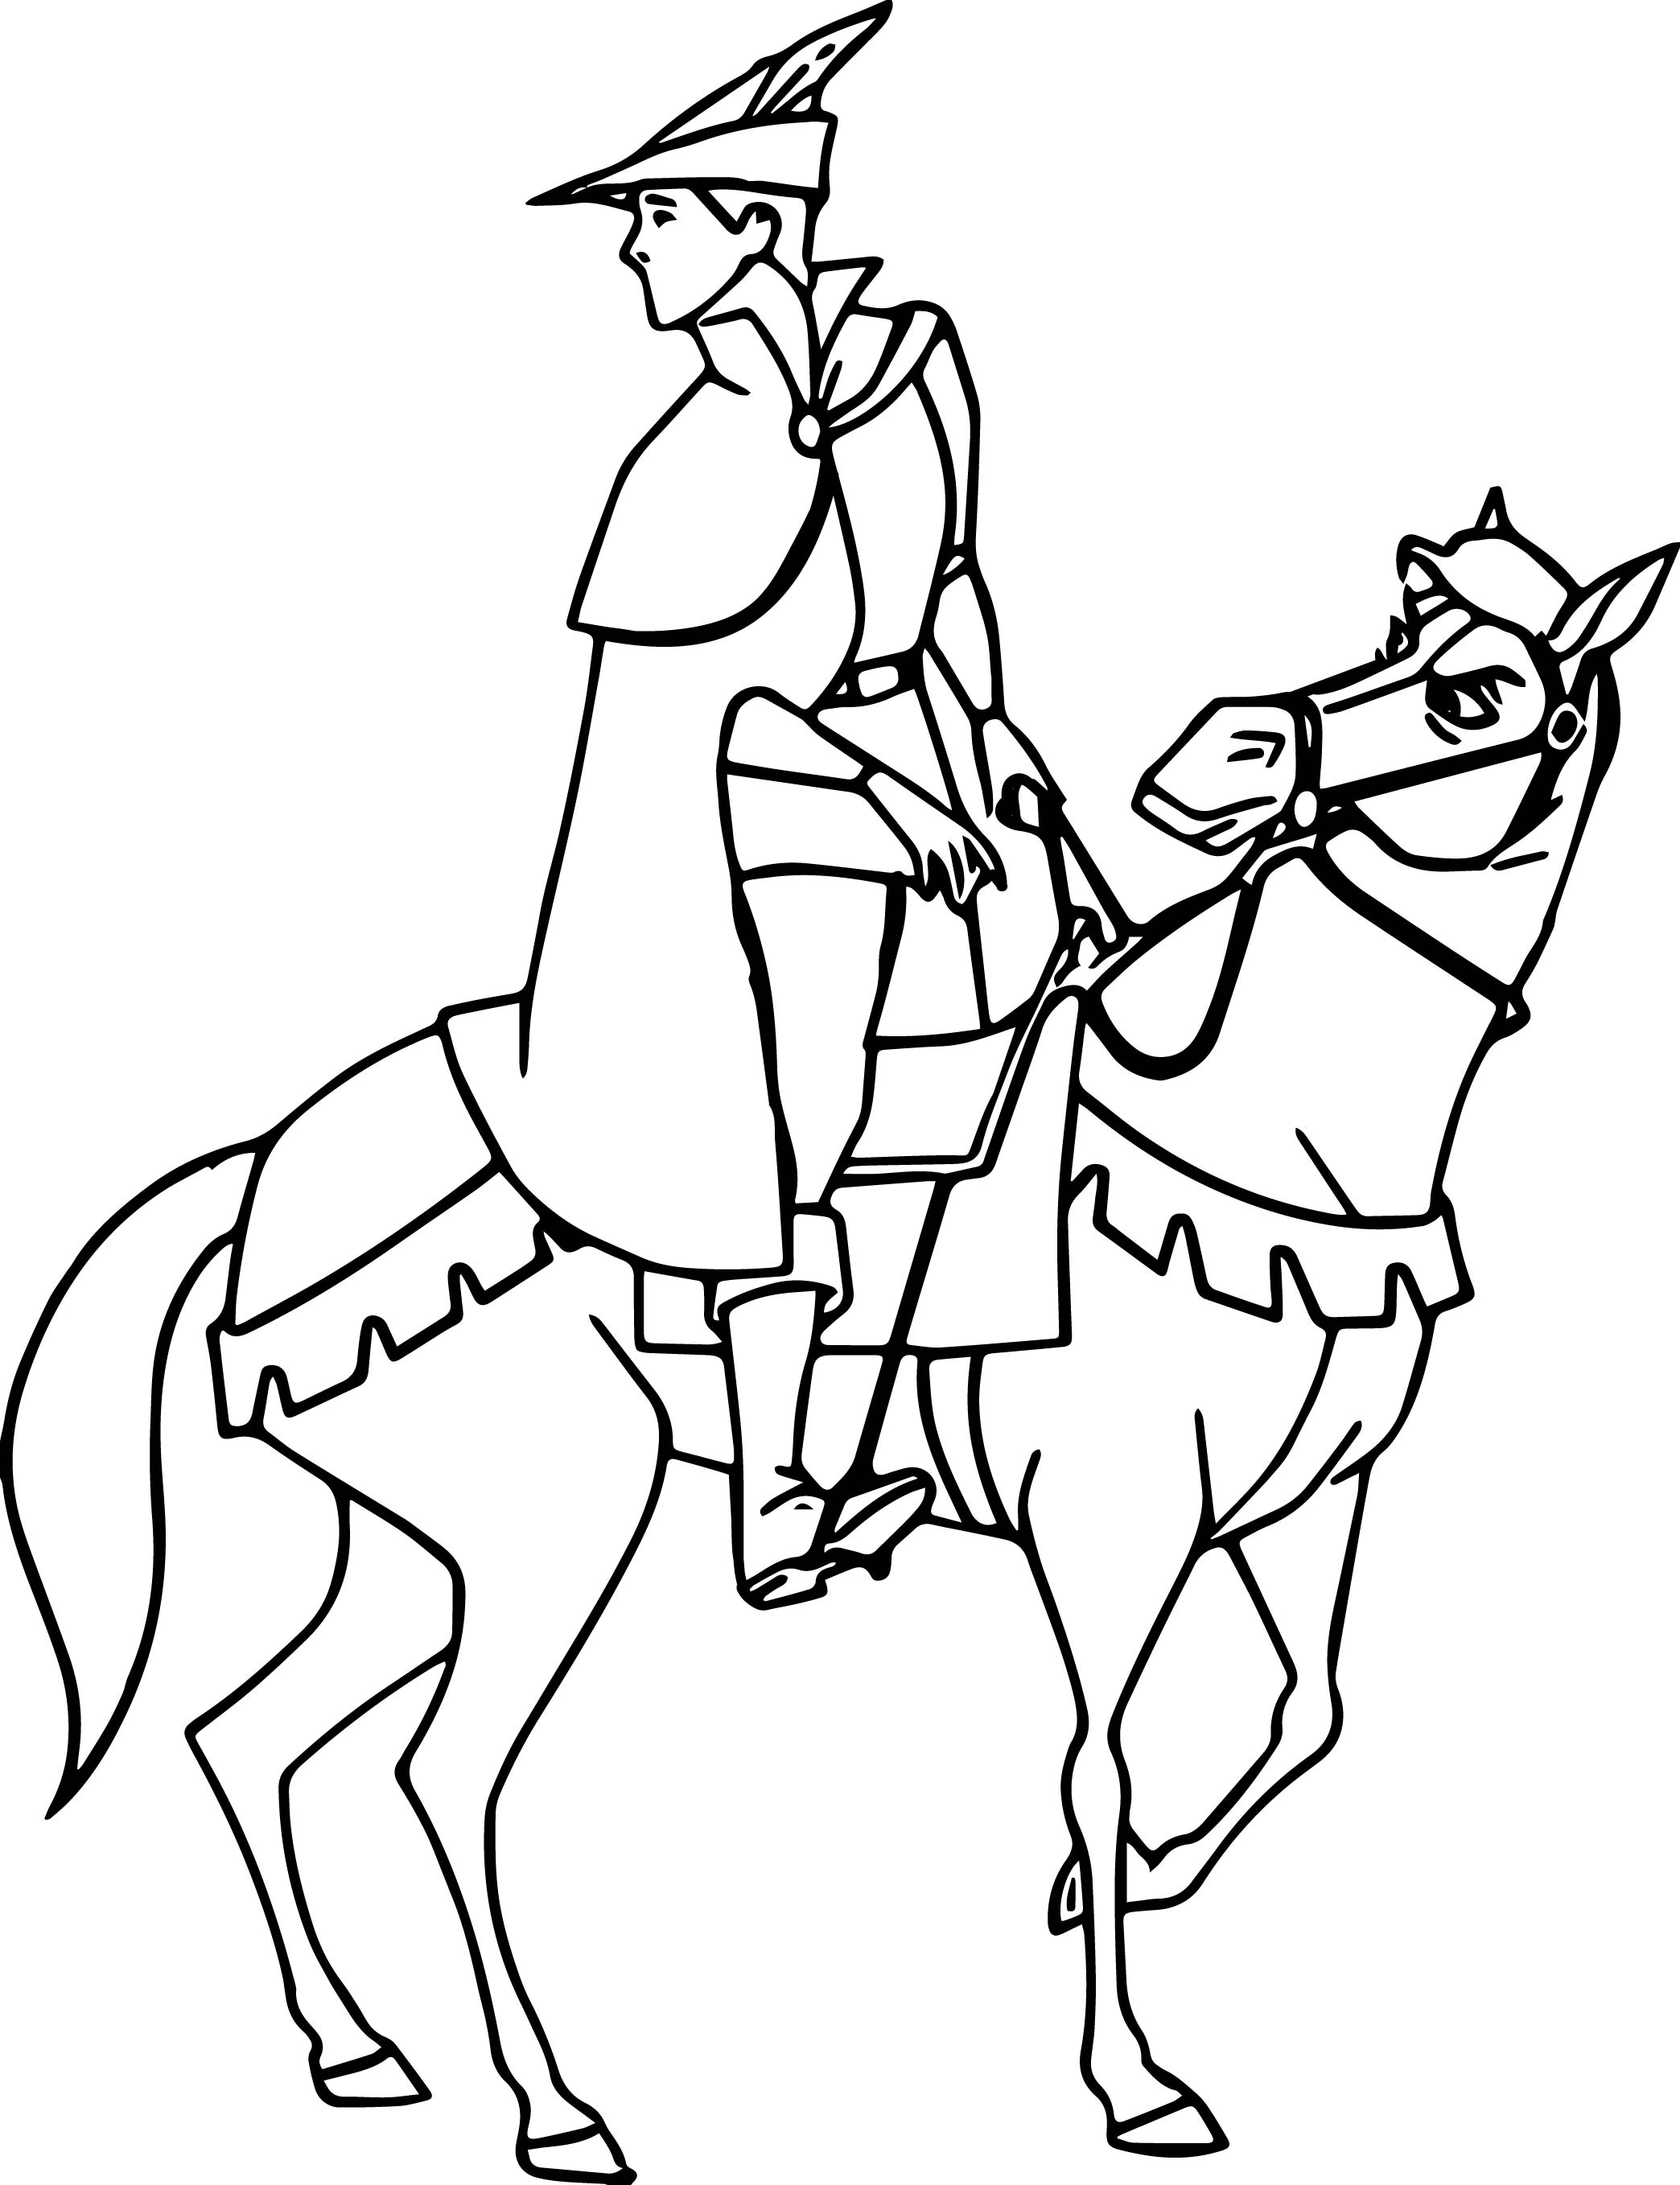 Samson Coloring Pages